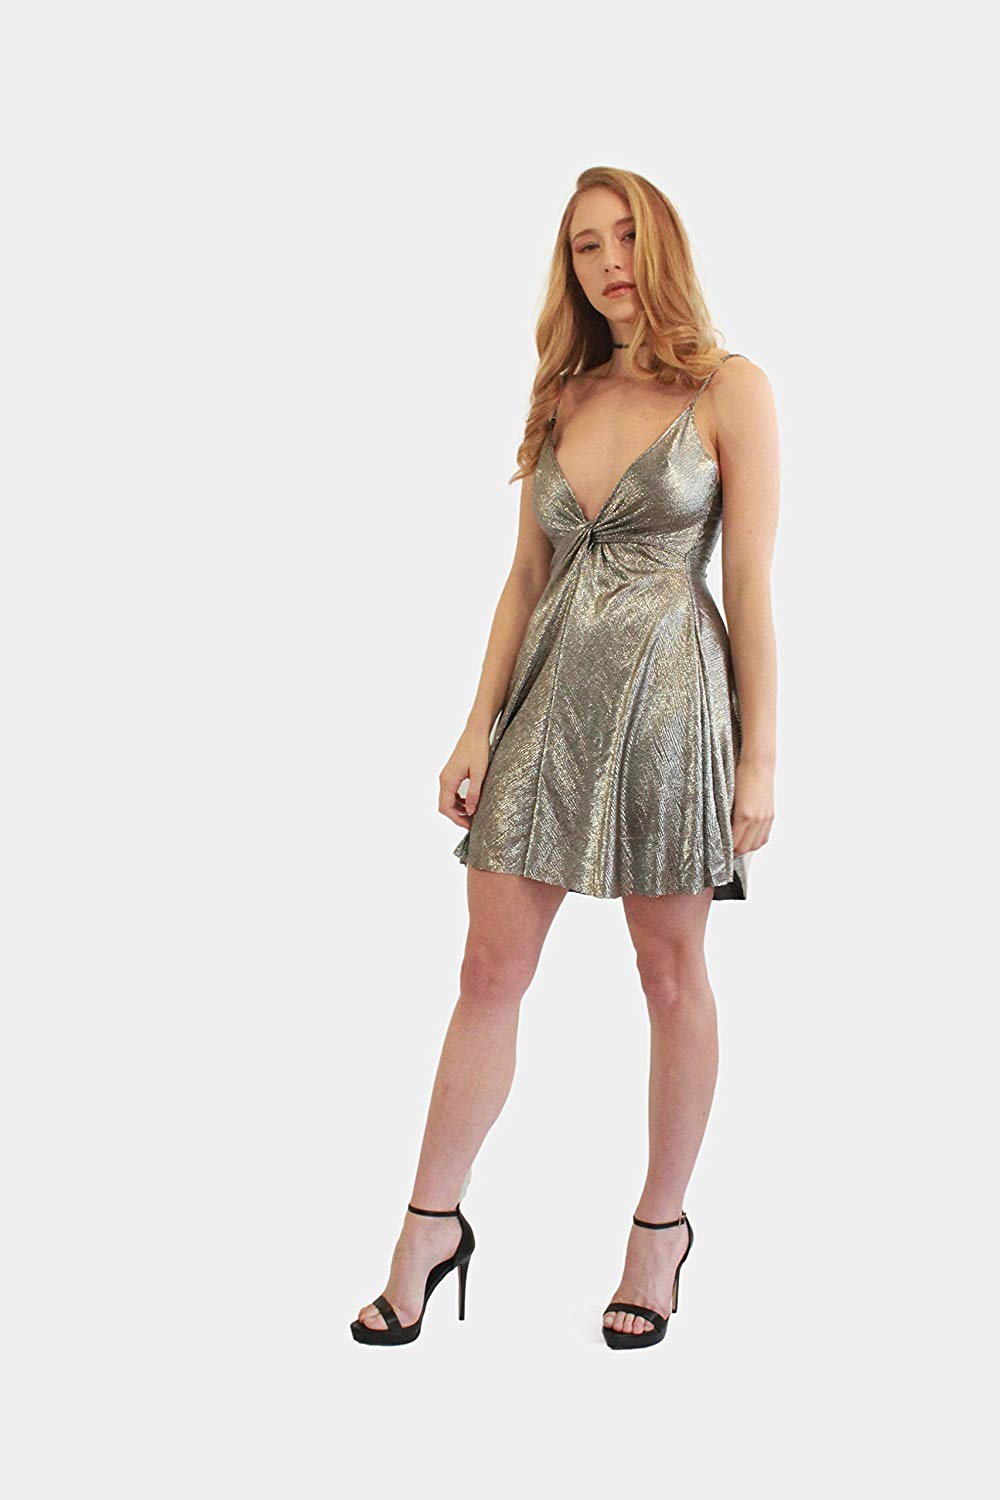 Women outfits metallic Gold silver sexy and for